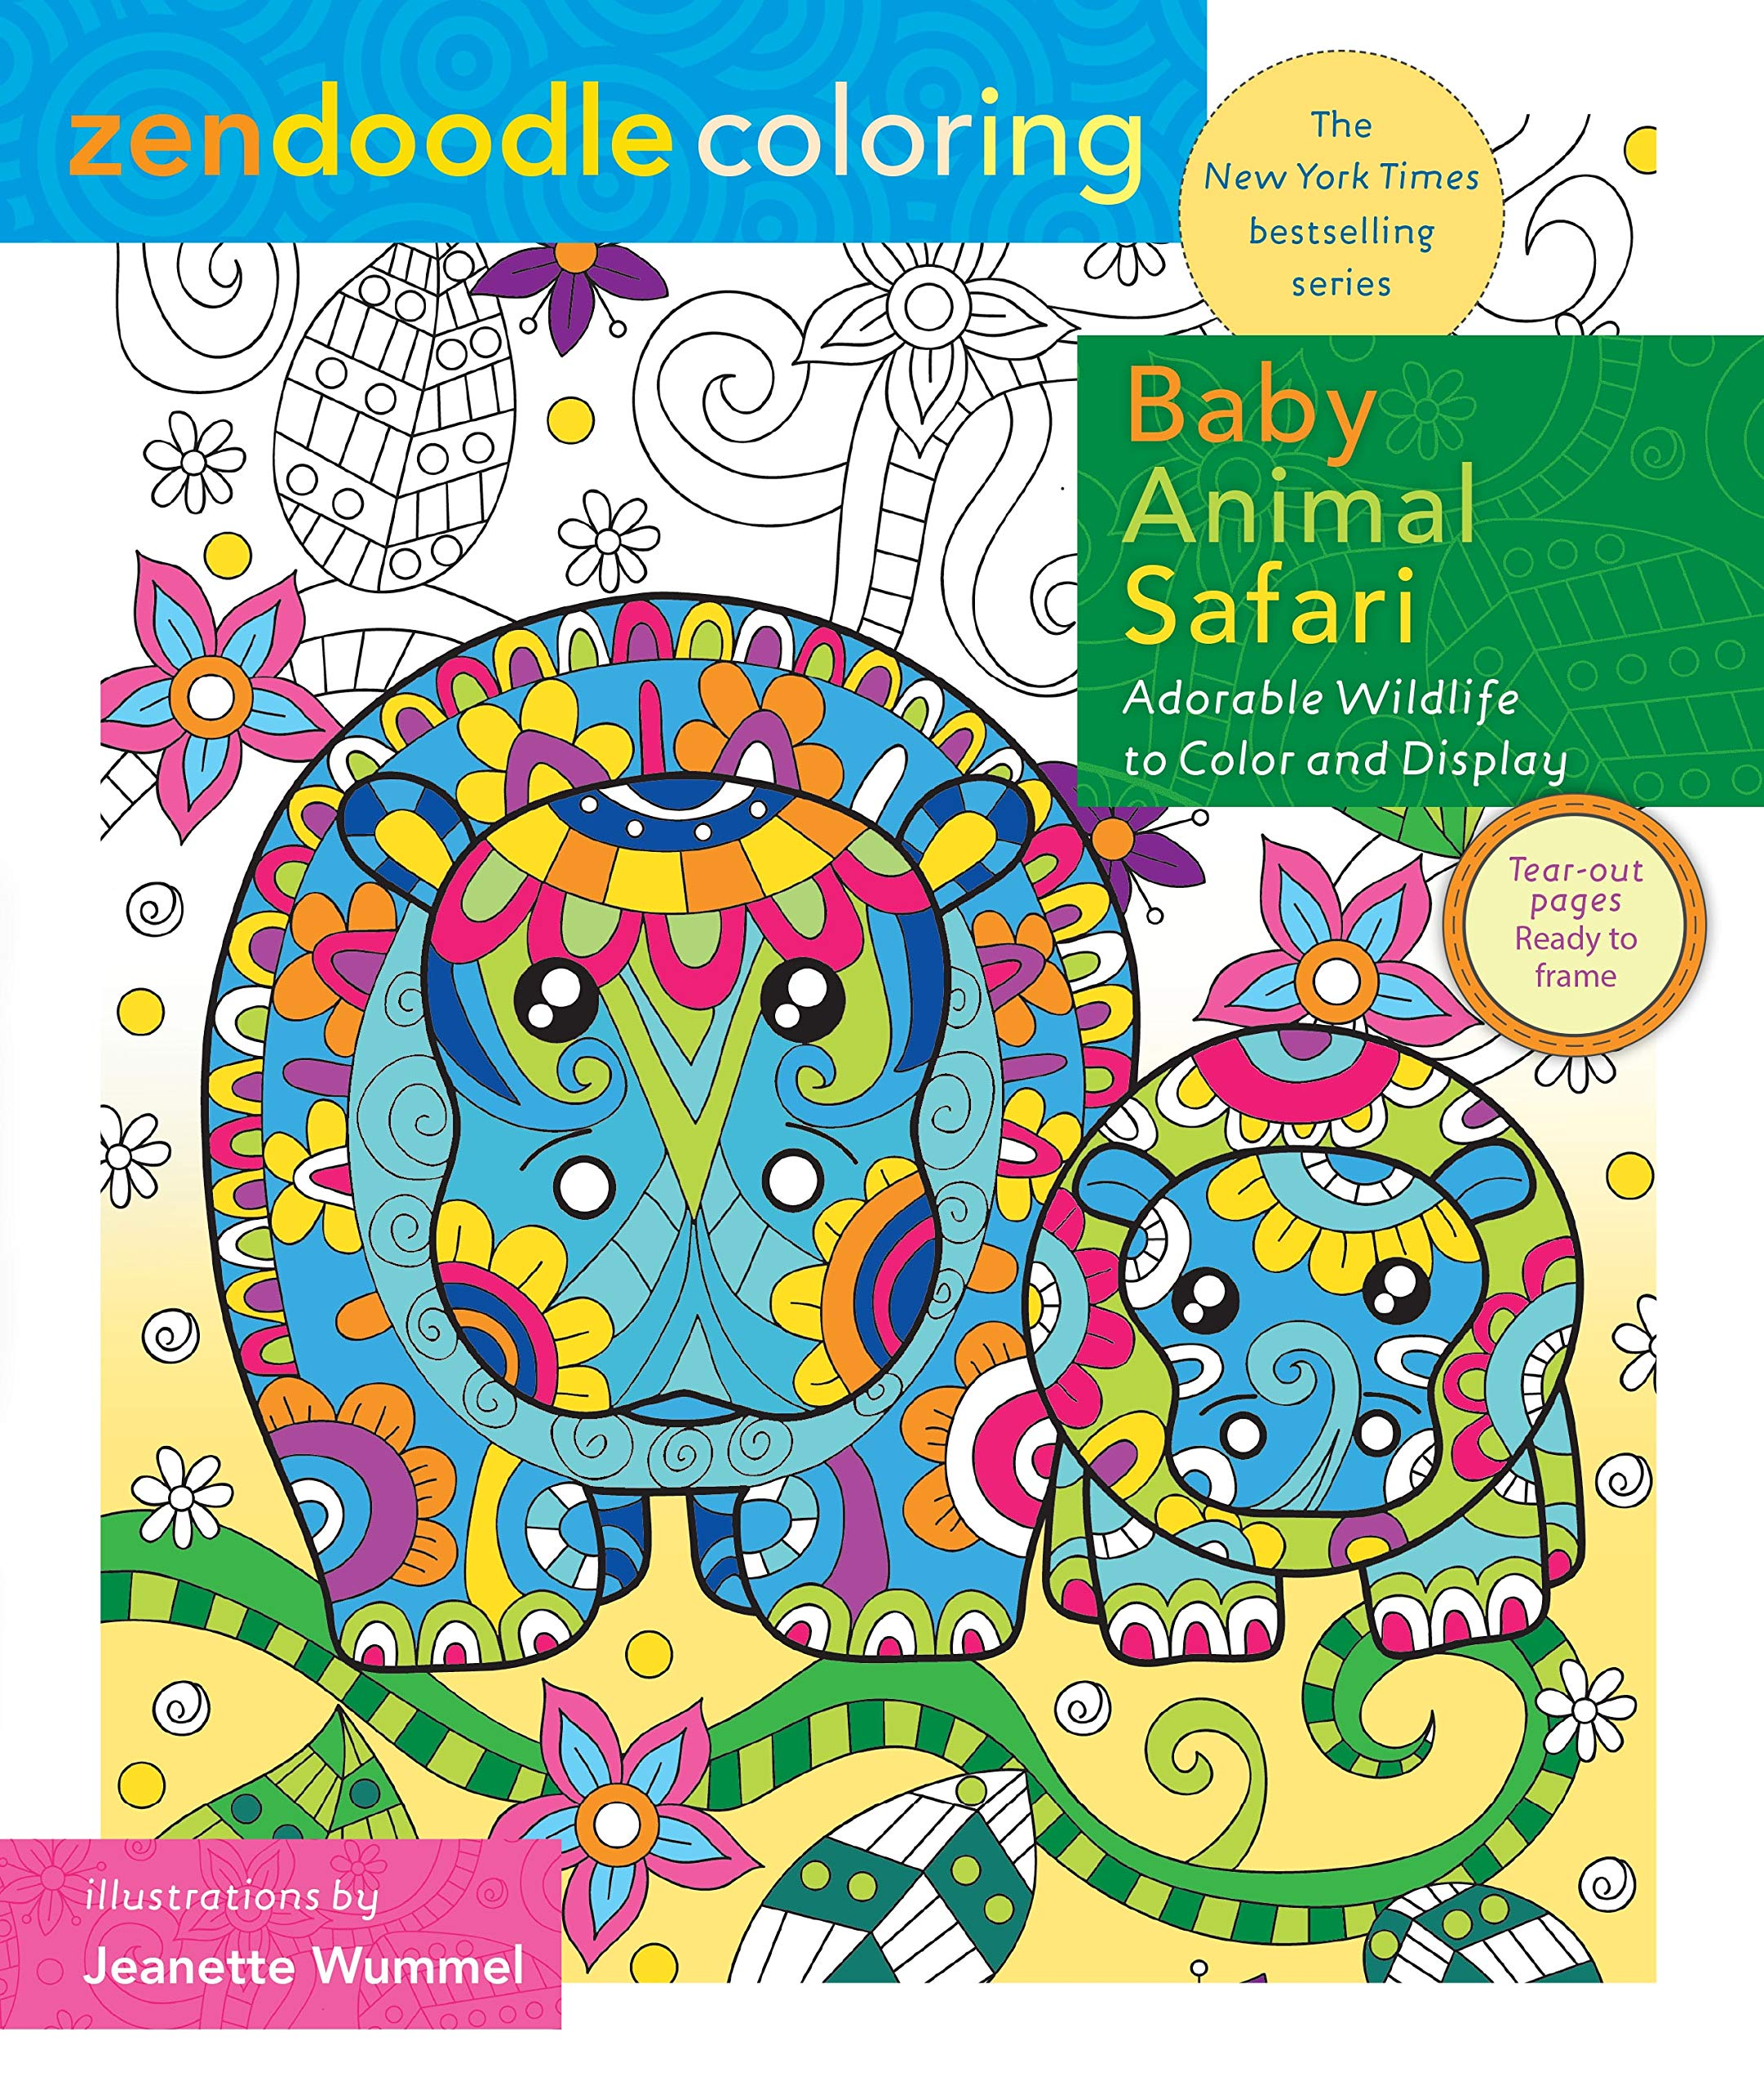 Zendoodle Coloring Adorable Wildlife Display product image